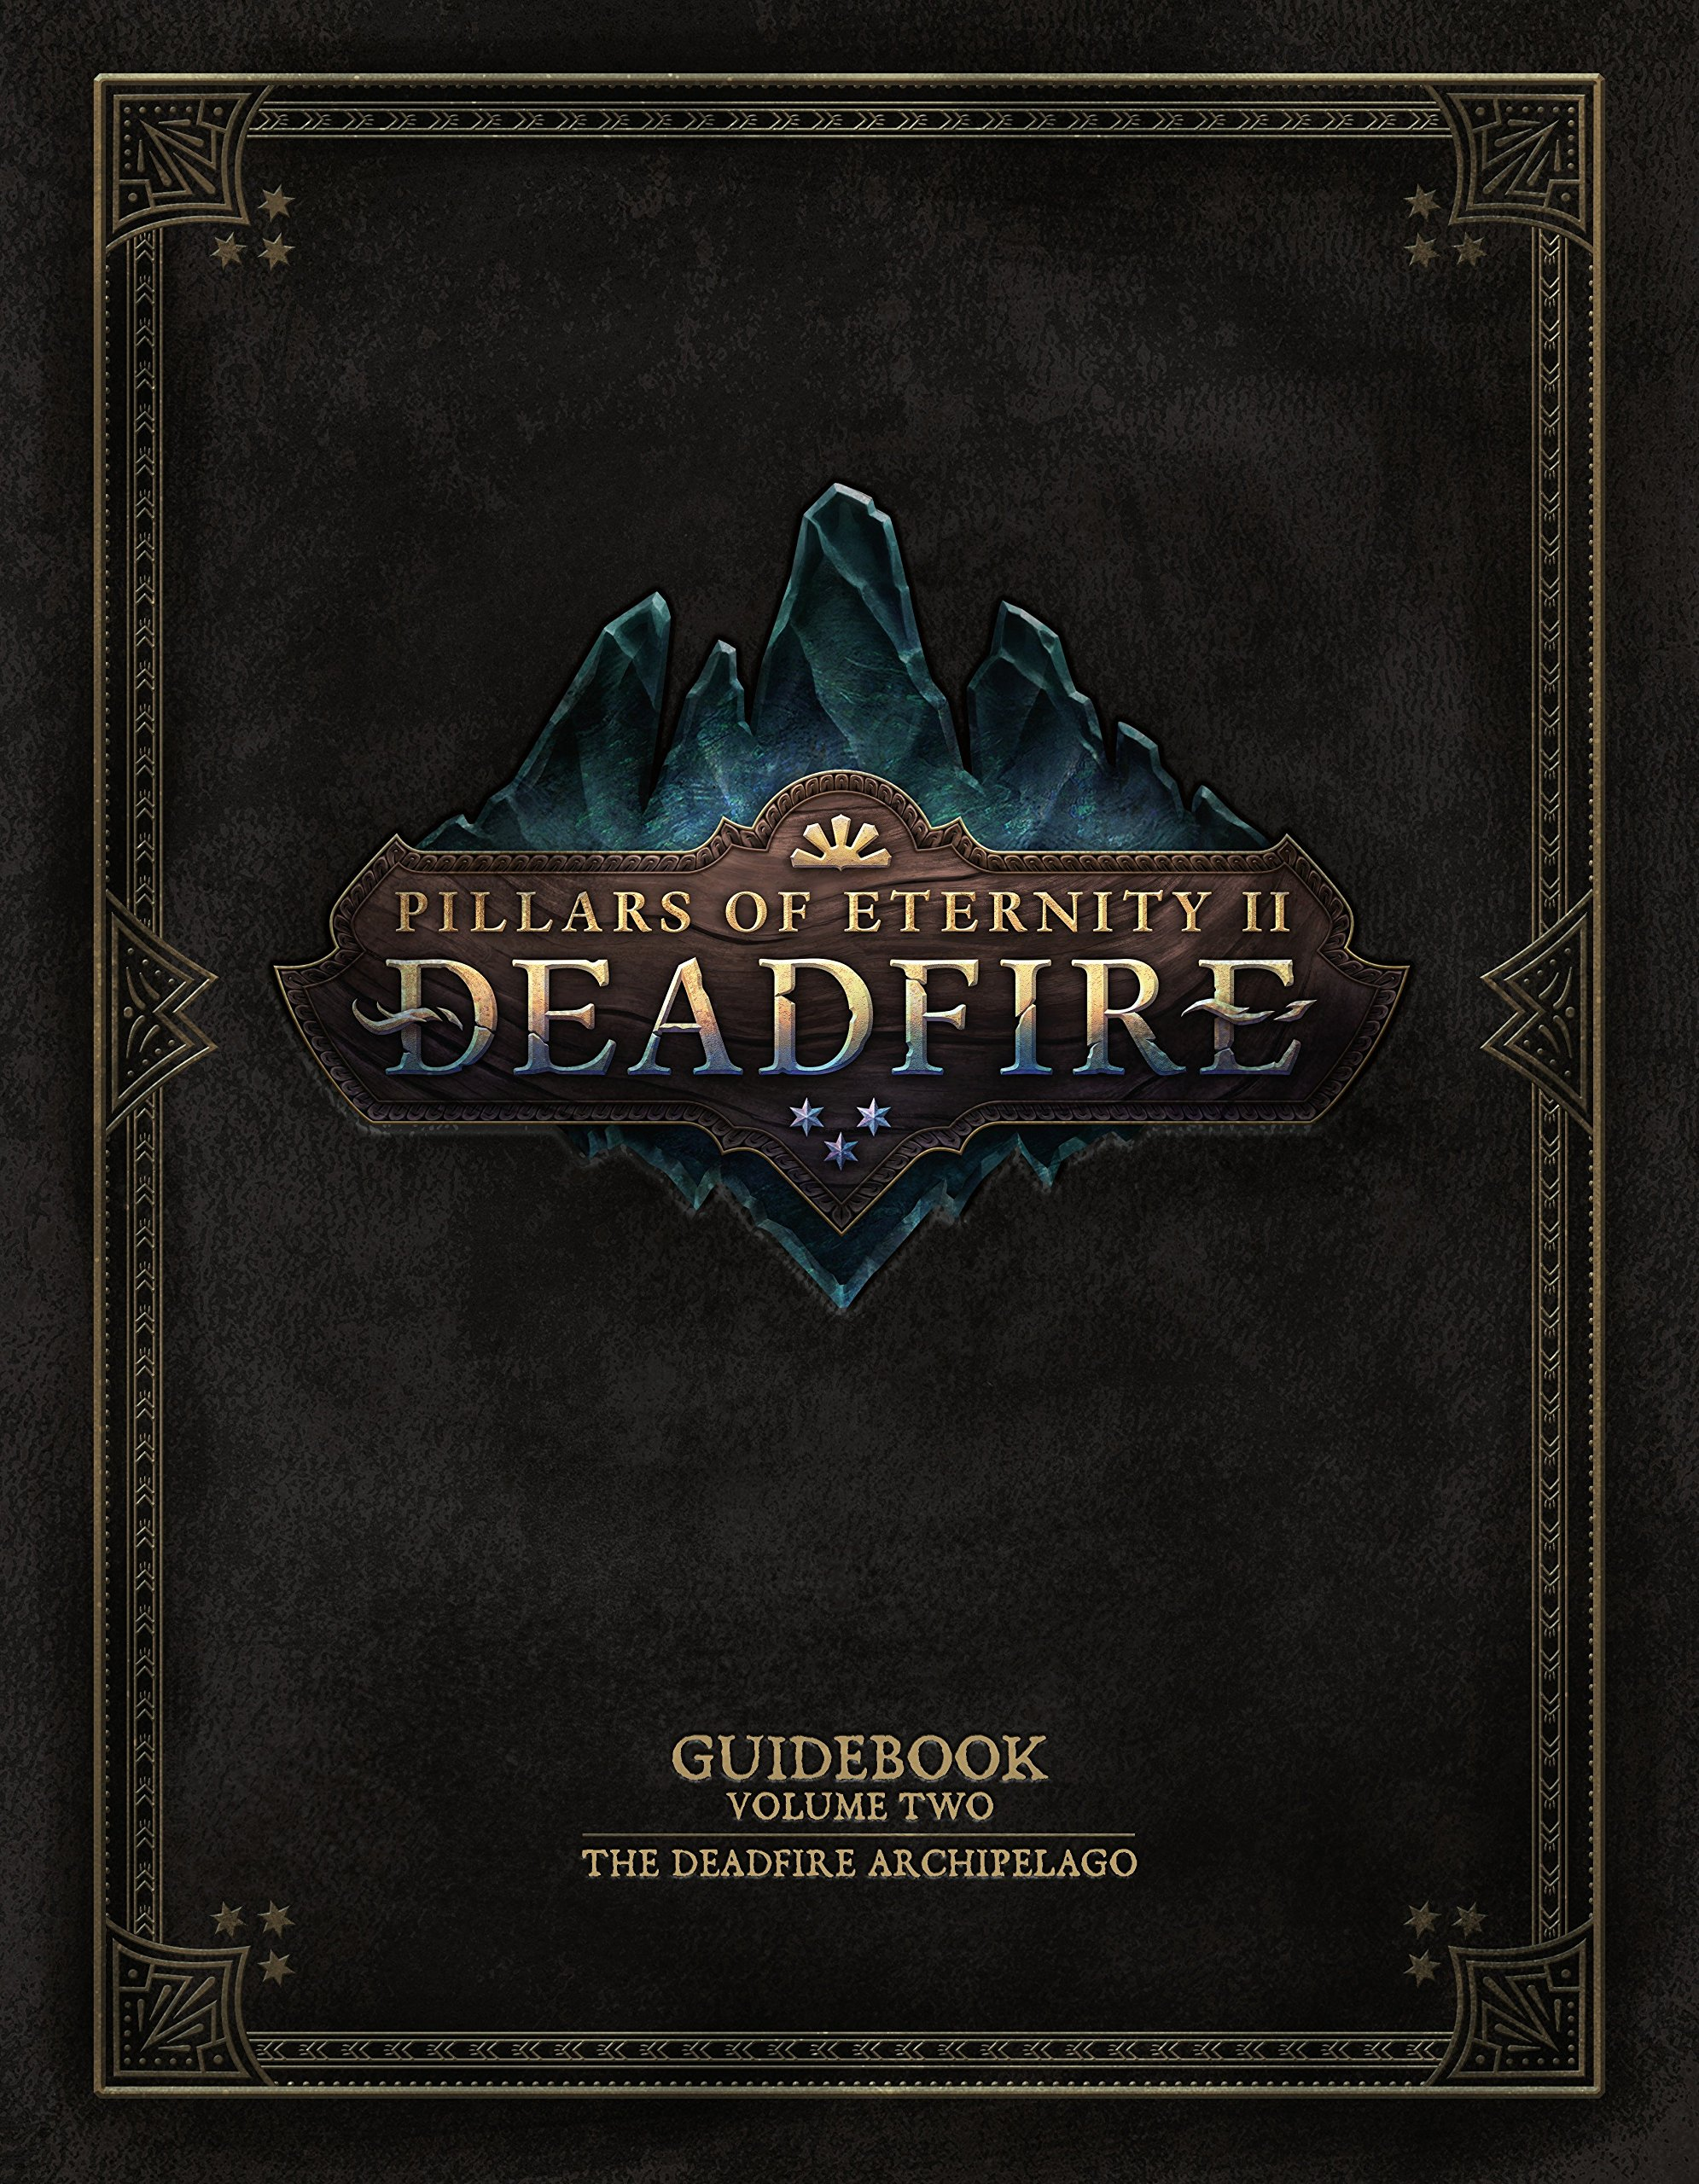 Image OfPillars Of Eternity Guidebook: Volume Two-The Deadfire Archipelago